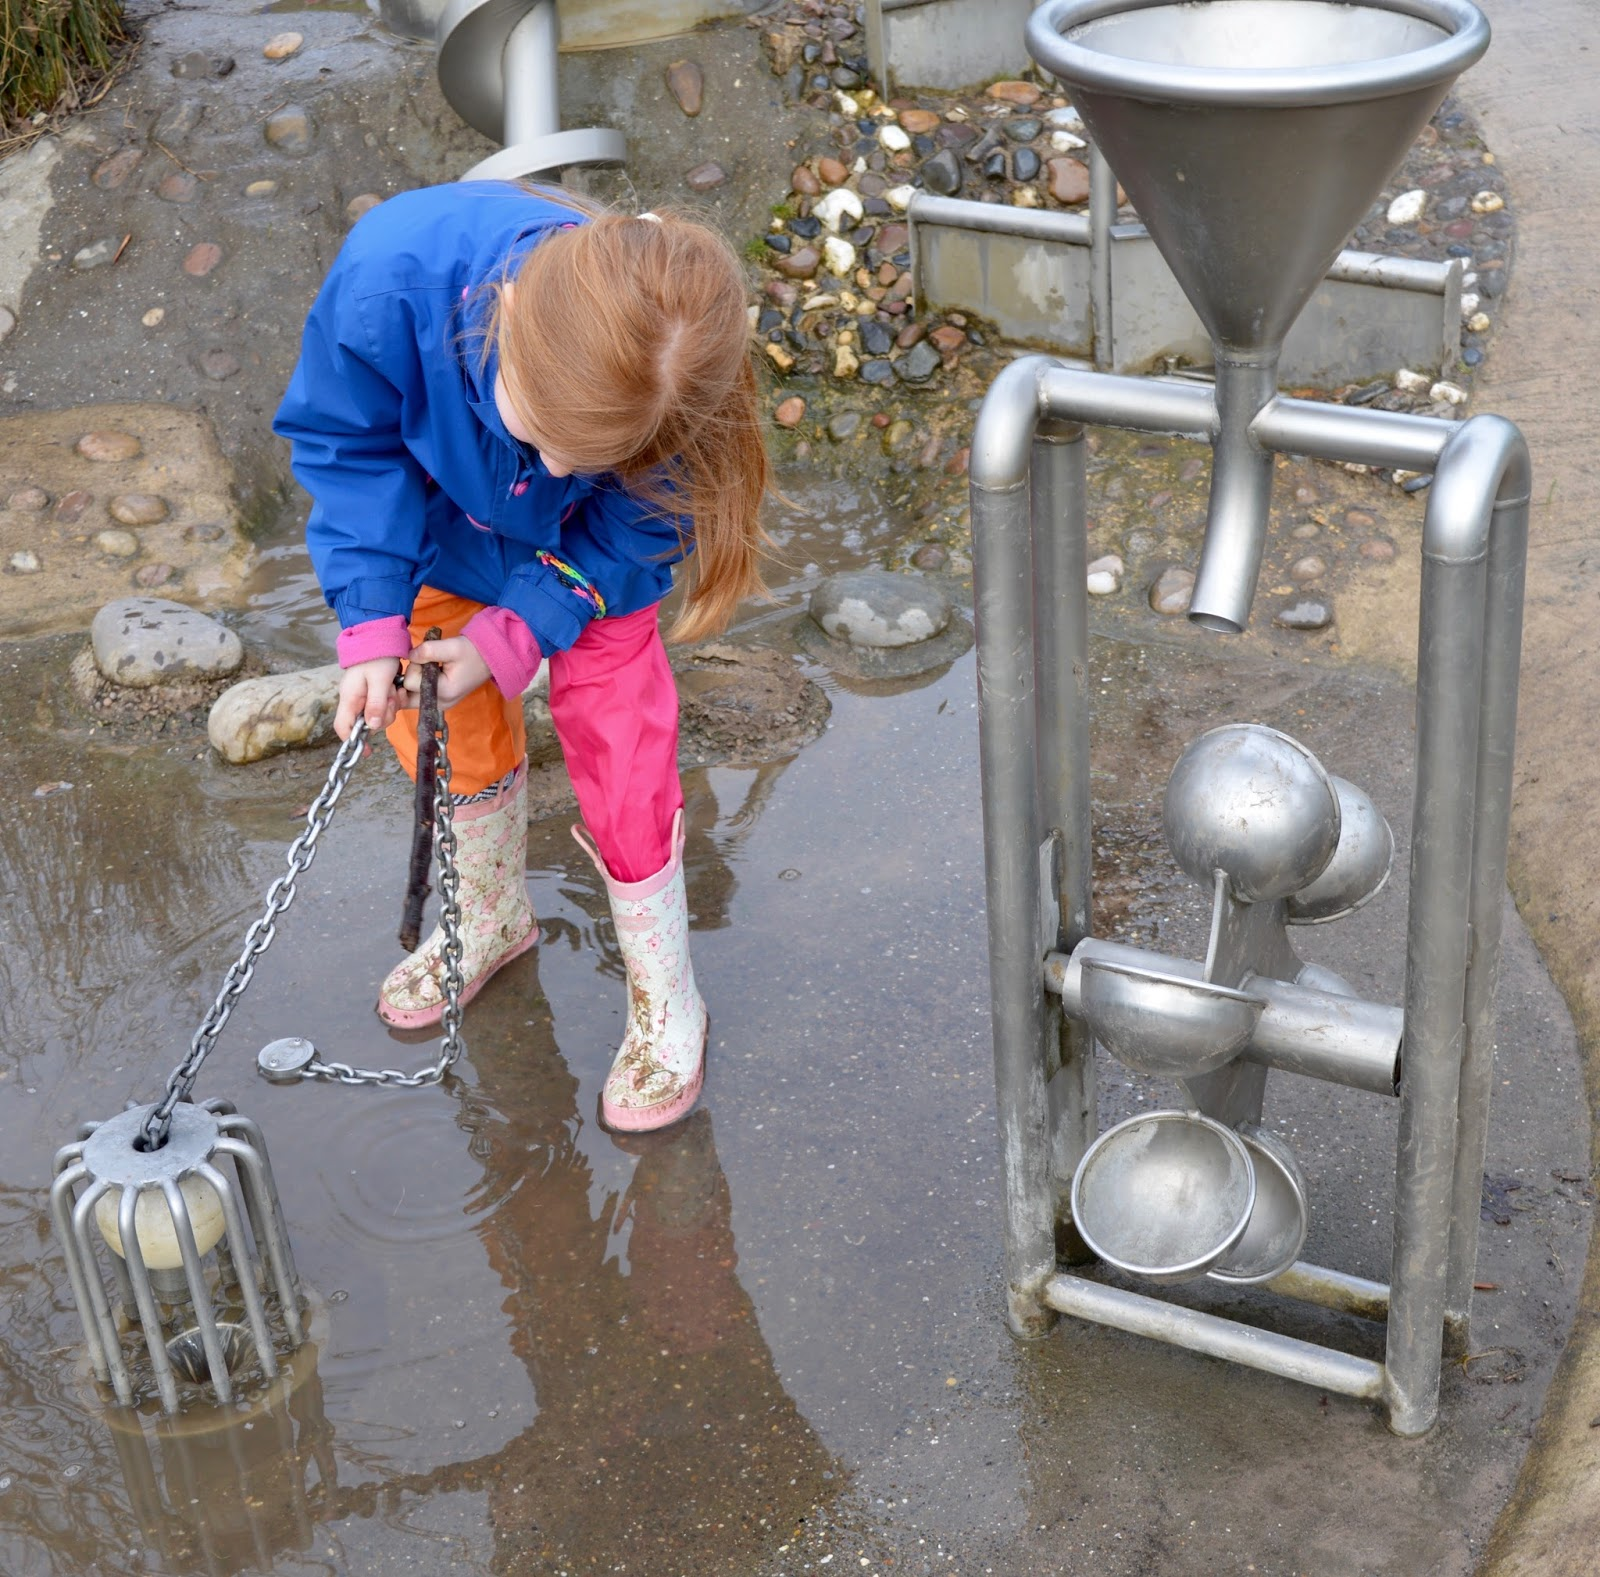 WWT Washington Wetland Centre | An Accessible North East Day Out for the Whole Family - water play